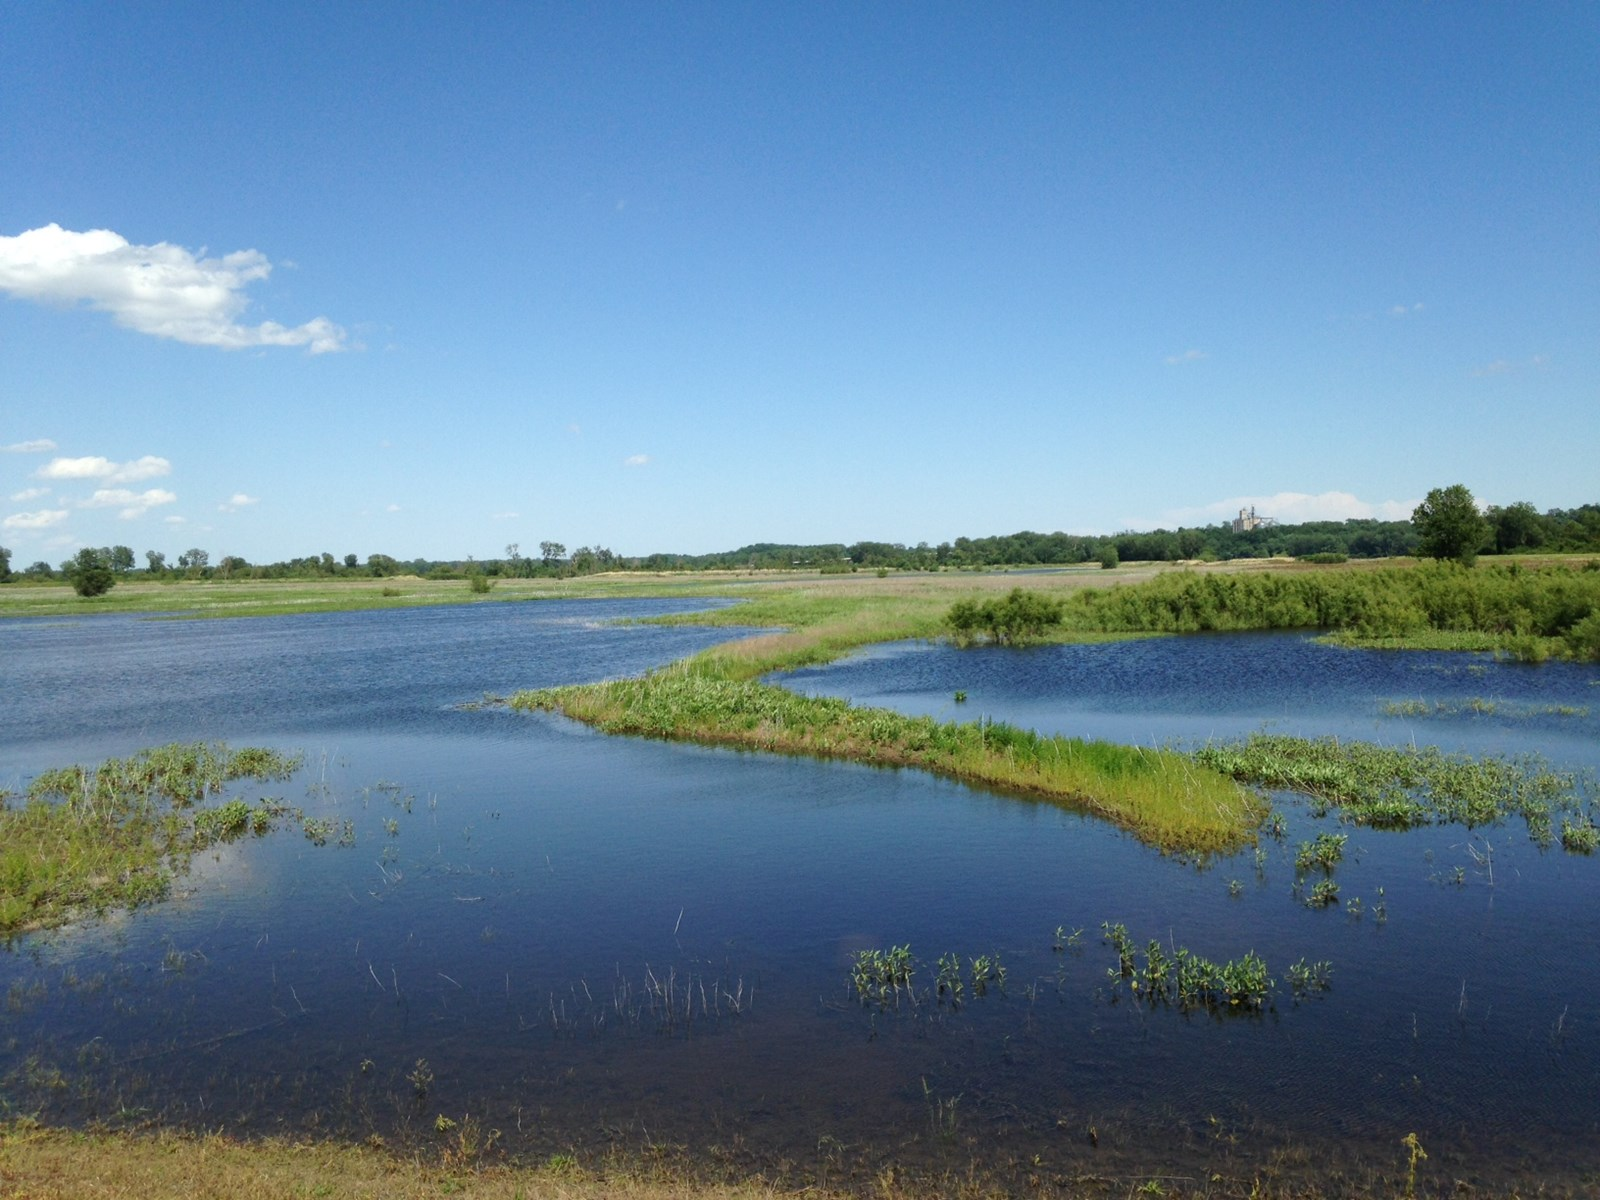 Land for Sale, Wetland / Hunting Riverfront Acreage in MO